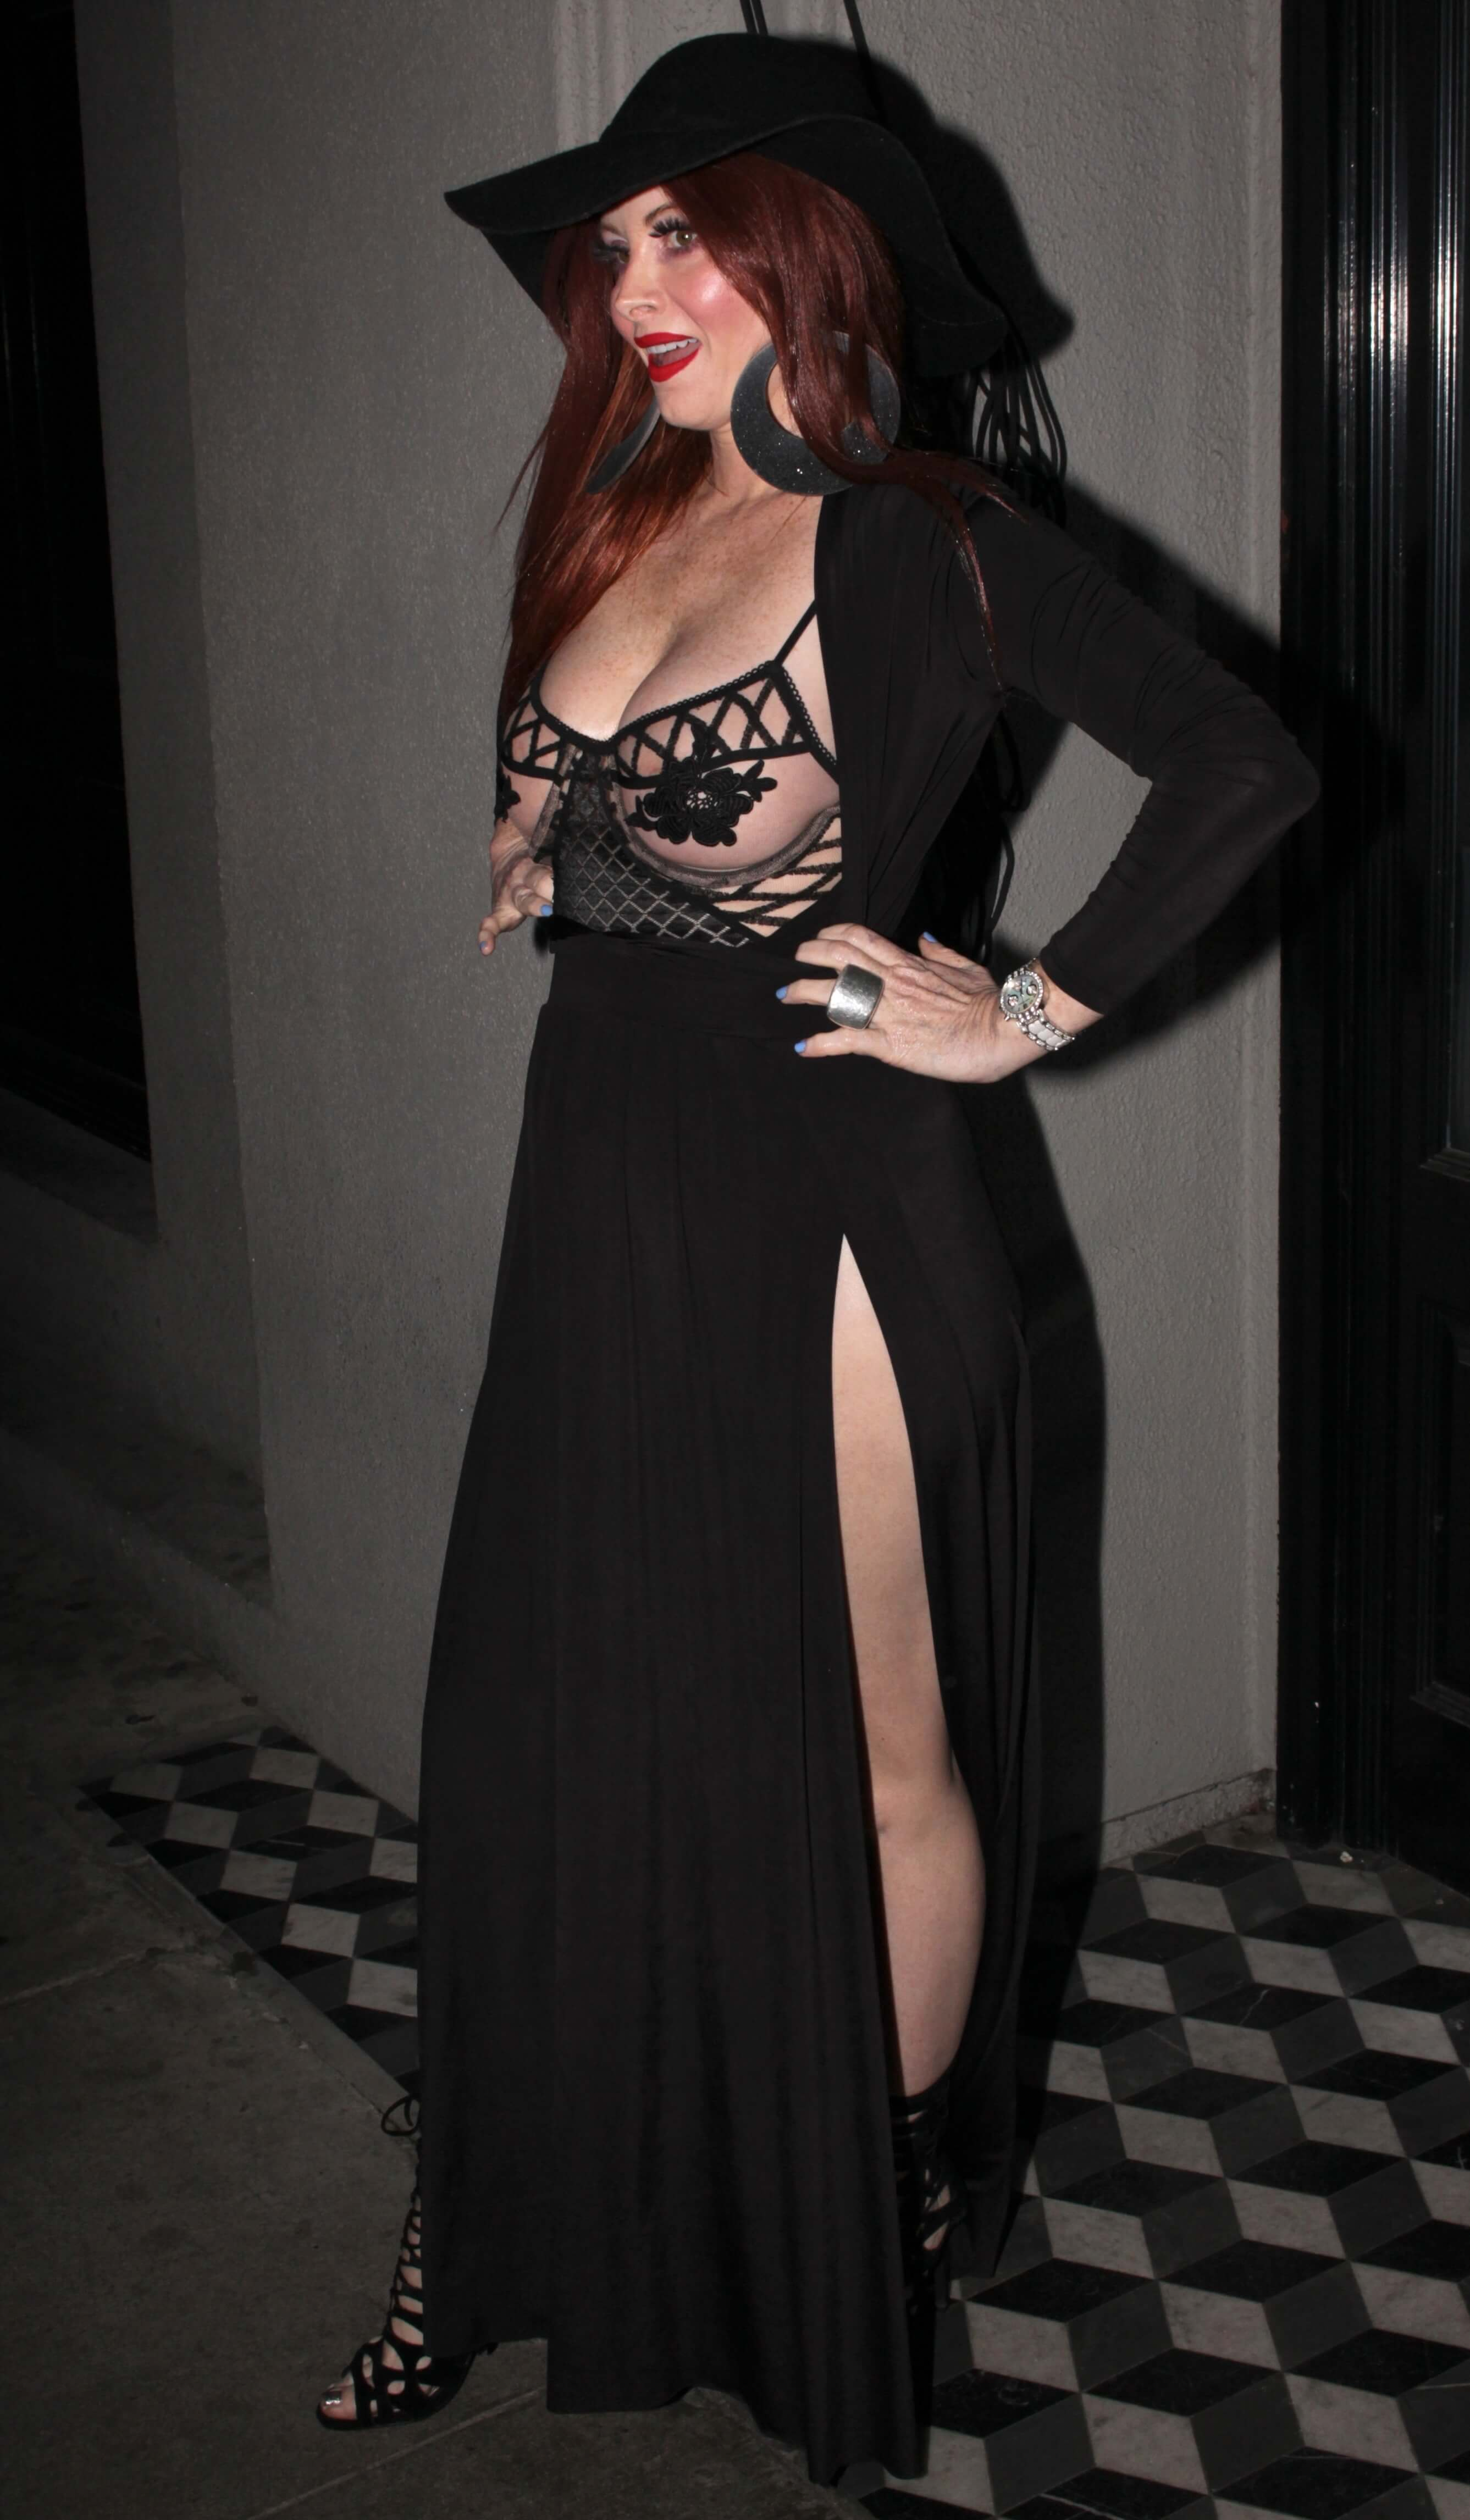 Phoebe Price sexy busty pictures